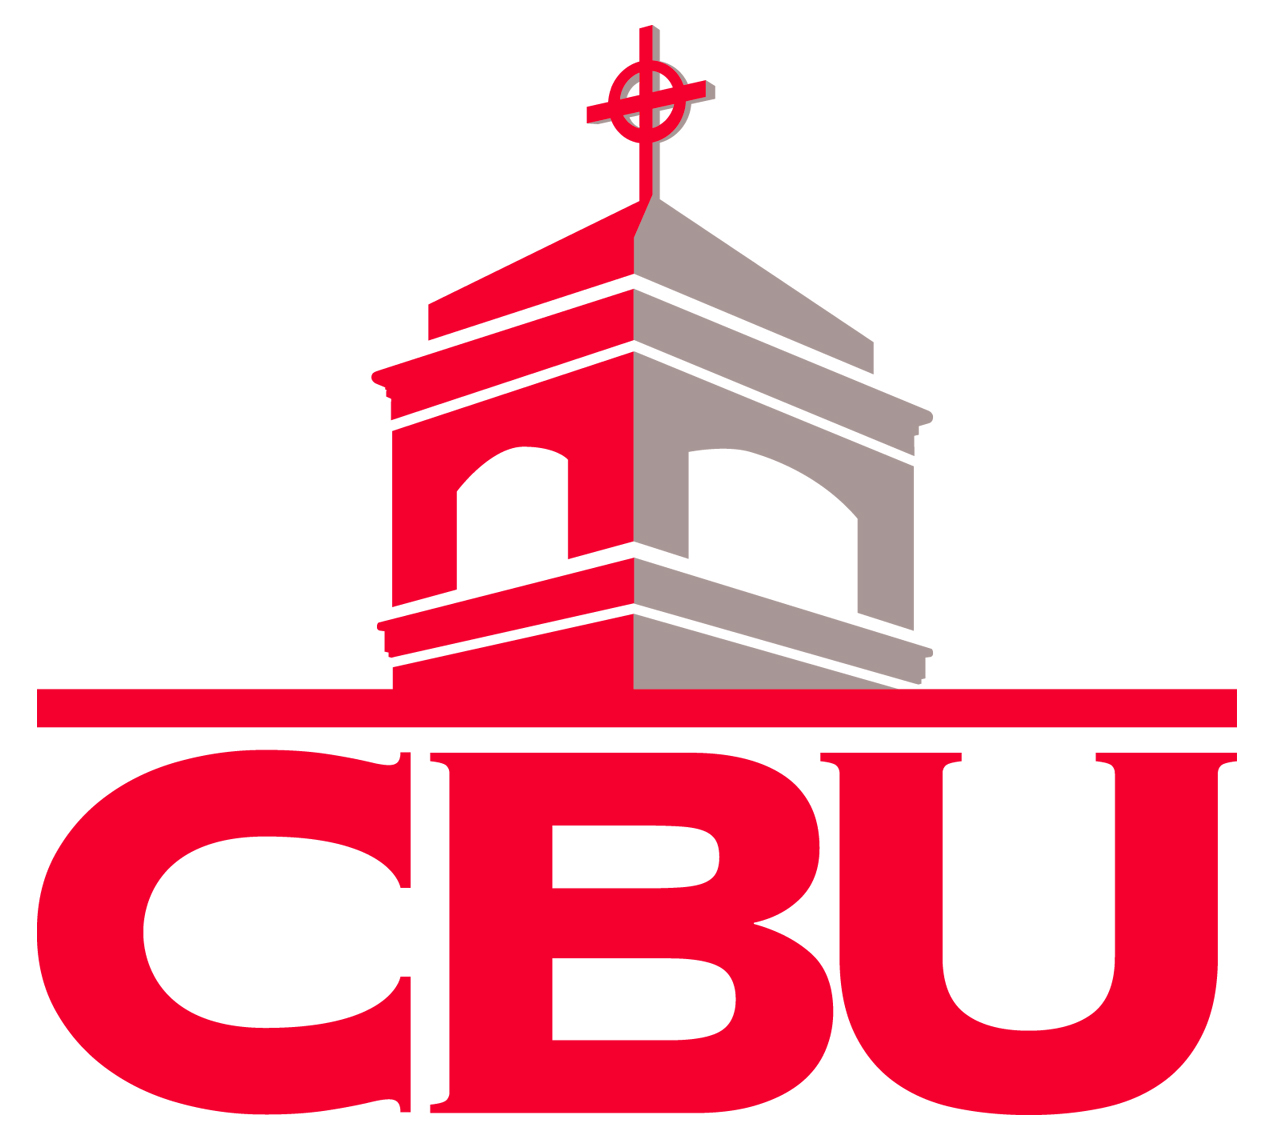 CBU Color Logo Medium JPG 300 dpi